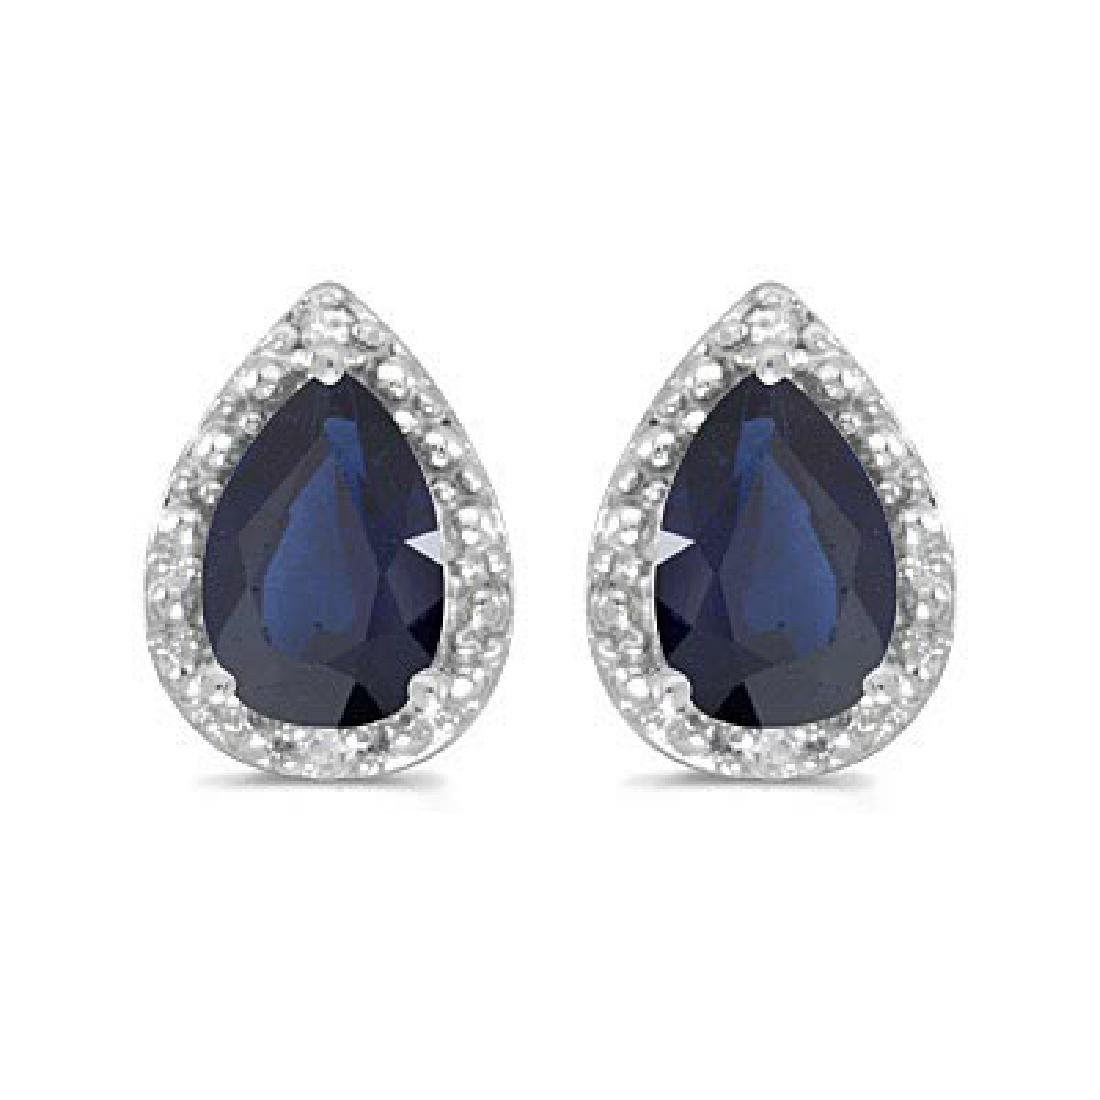 Pear Blue Sapphire and Diamond Stud Earrings 14k White